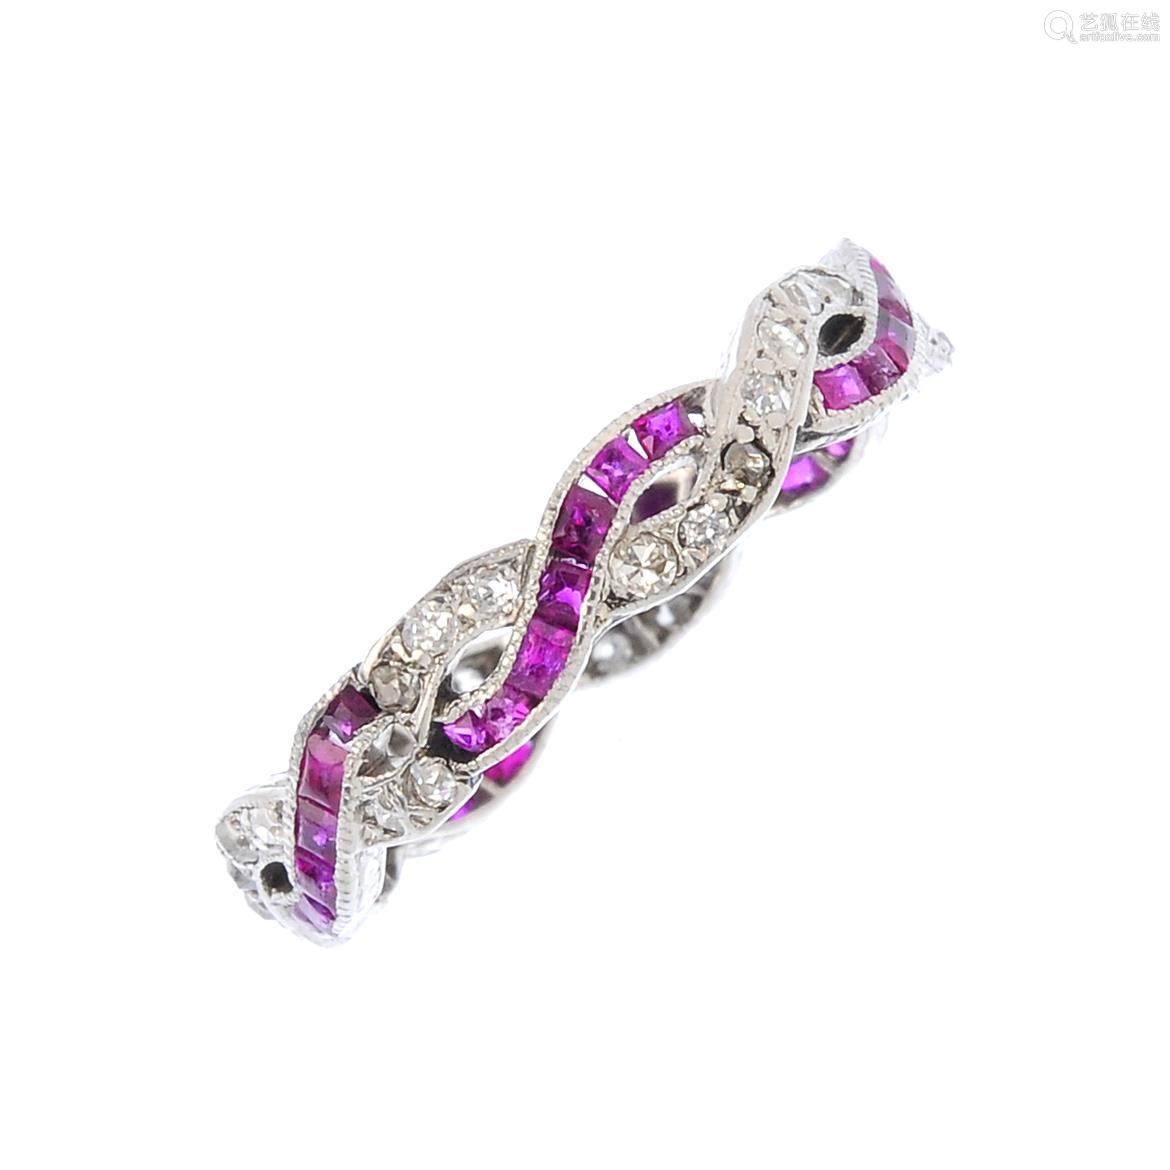 A ruby and diamond full eternity ring. Designed as two pave-set diamond and square-shape ruby